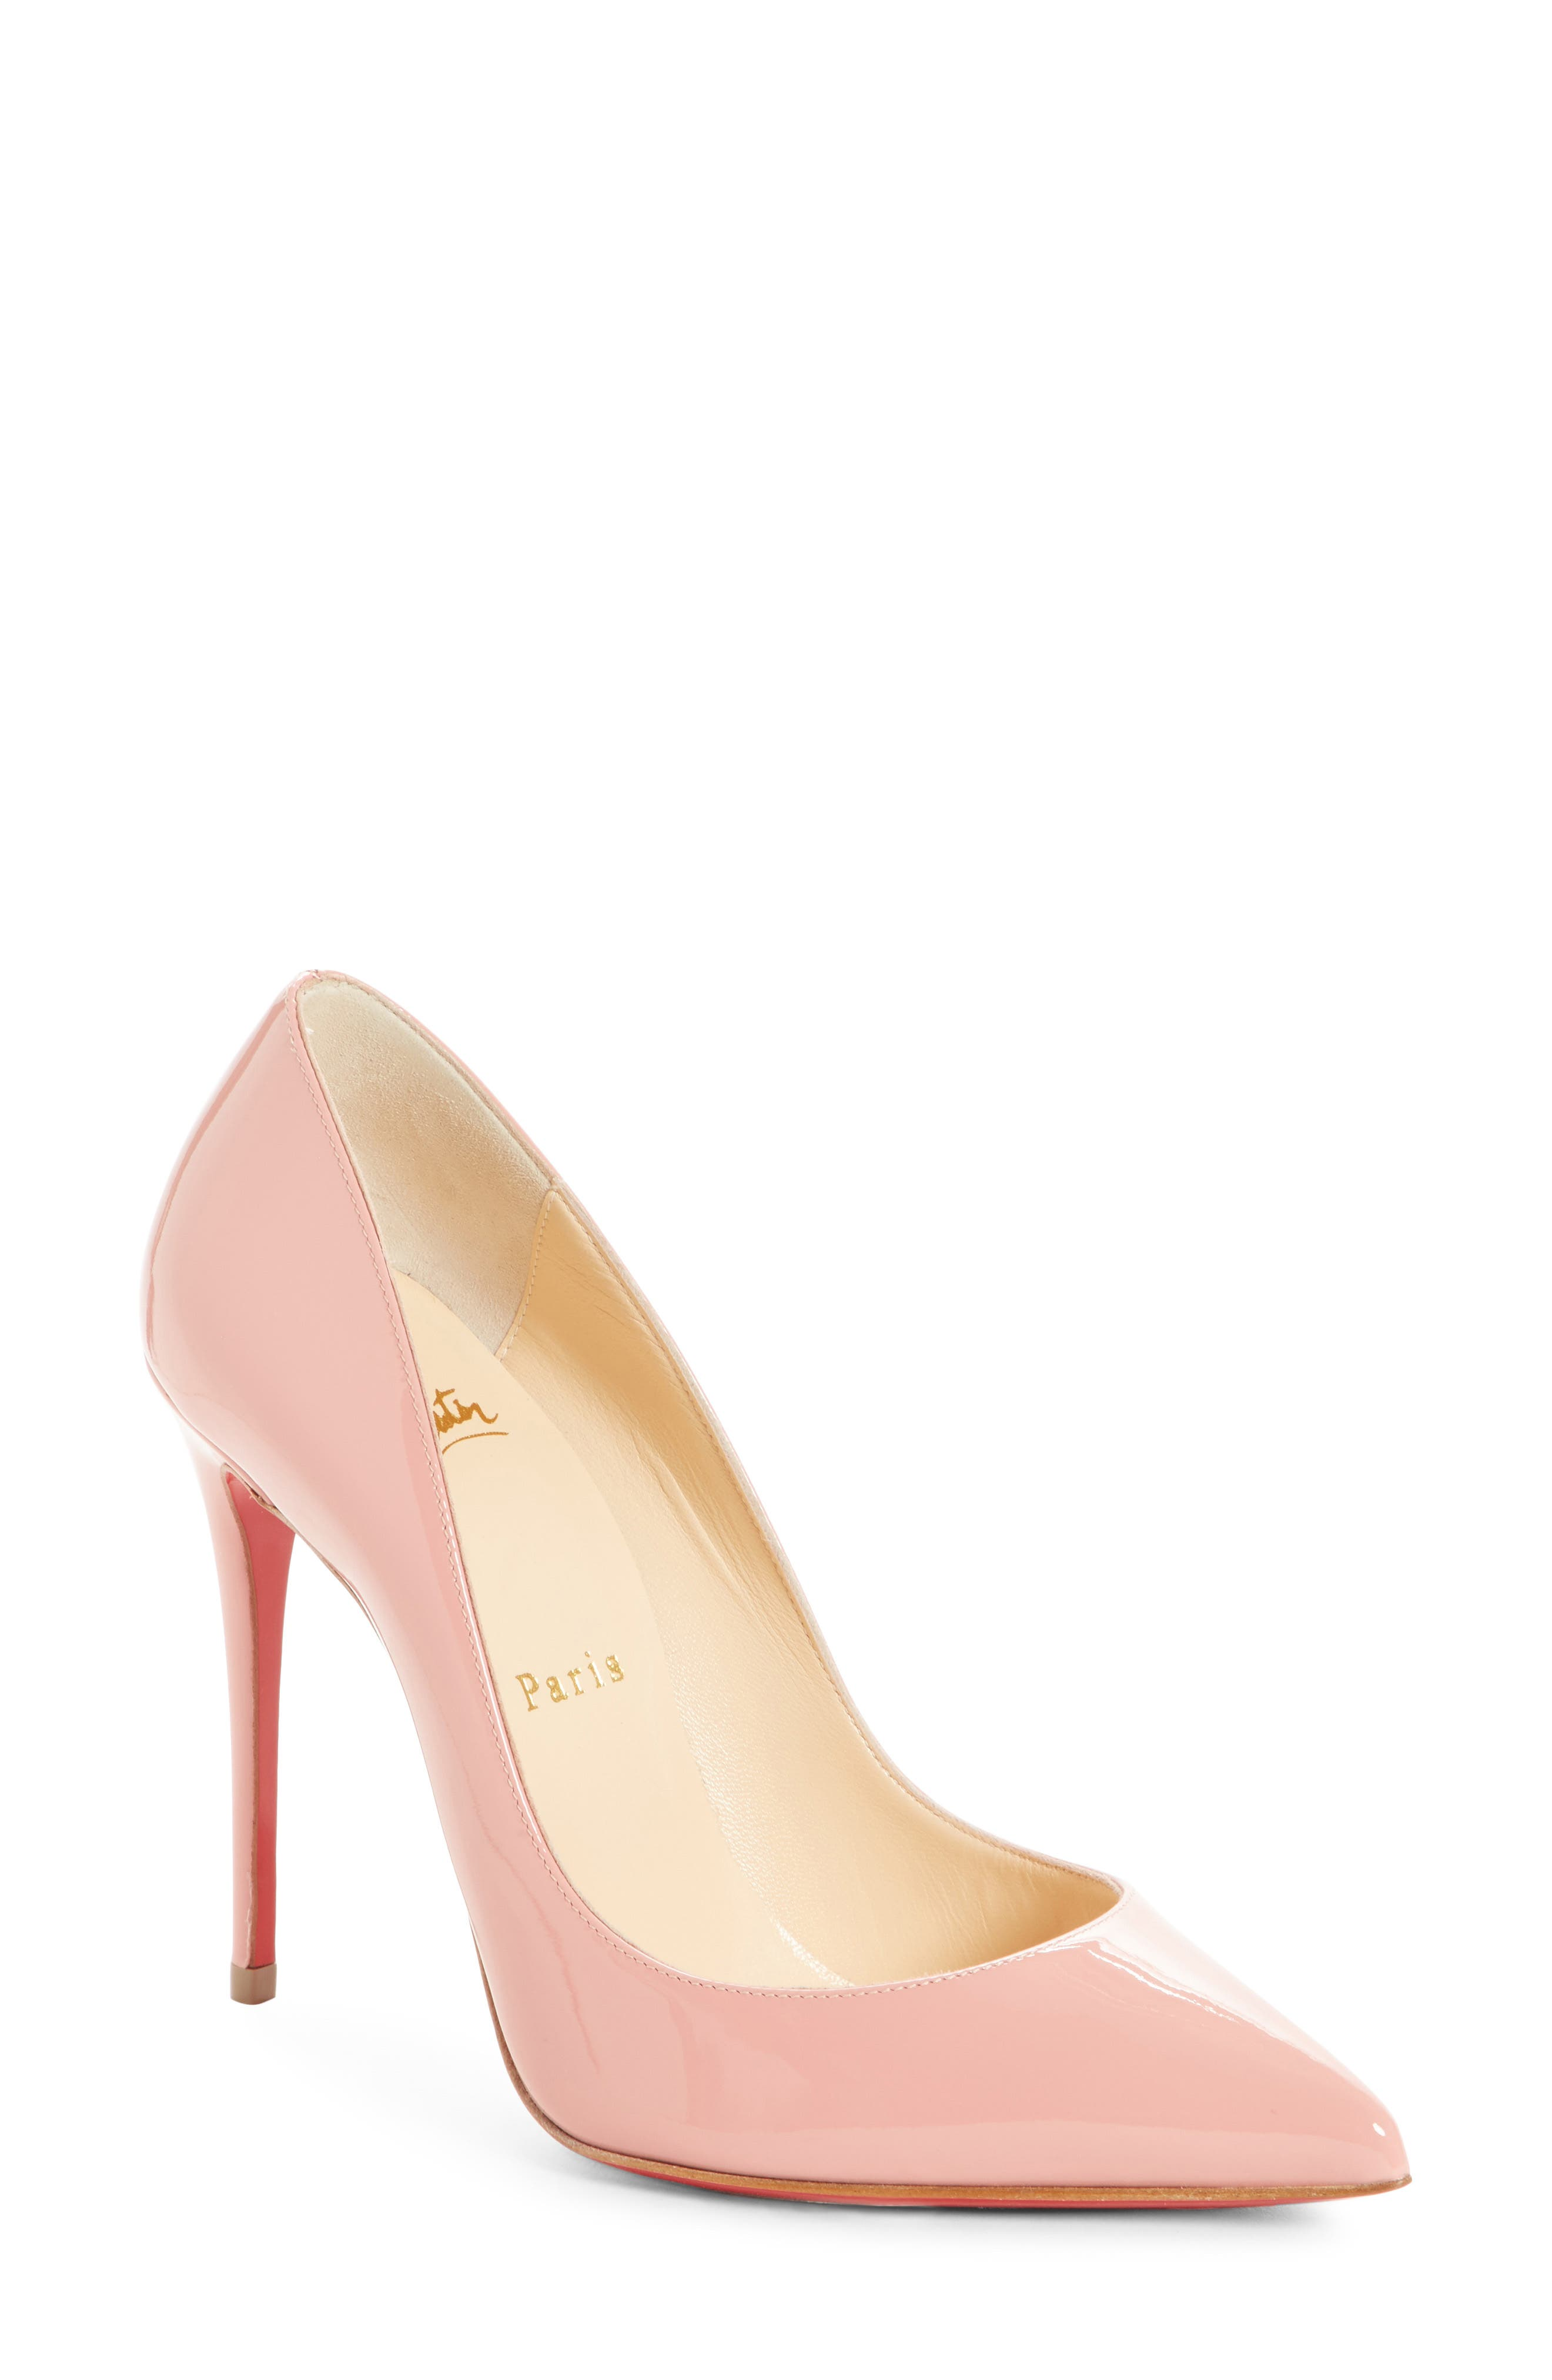 'Pigalle Follies' Pointy Toe Pump,                         Main,                         color, Marshmallow Pink